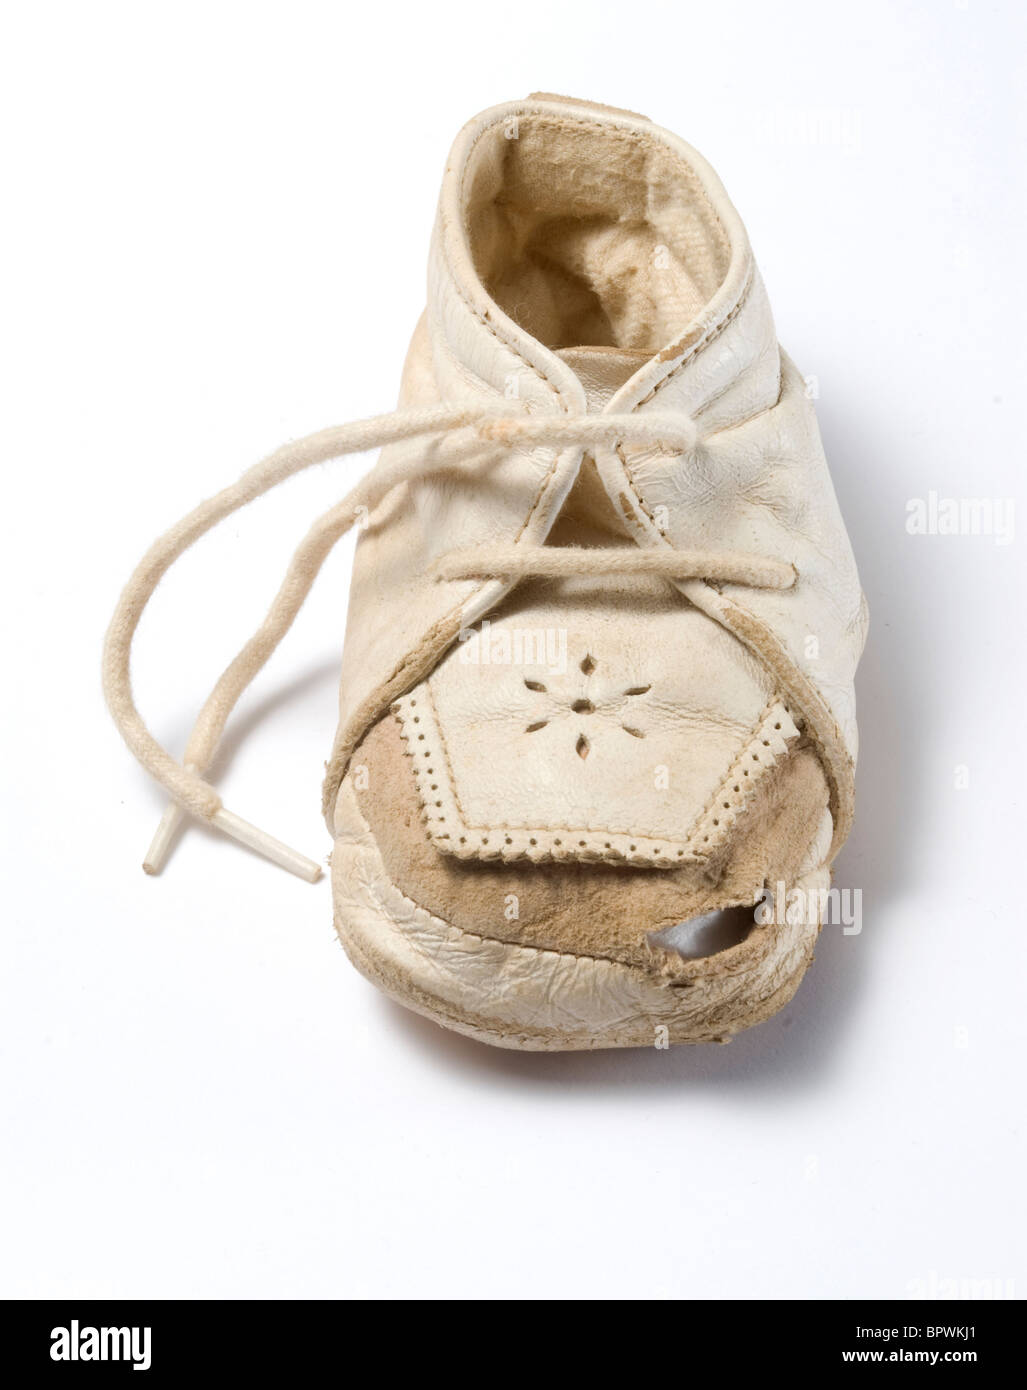 A baby's old white leather shoe with a hole in the toe - Stock Image